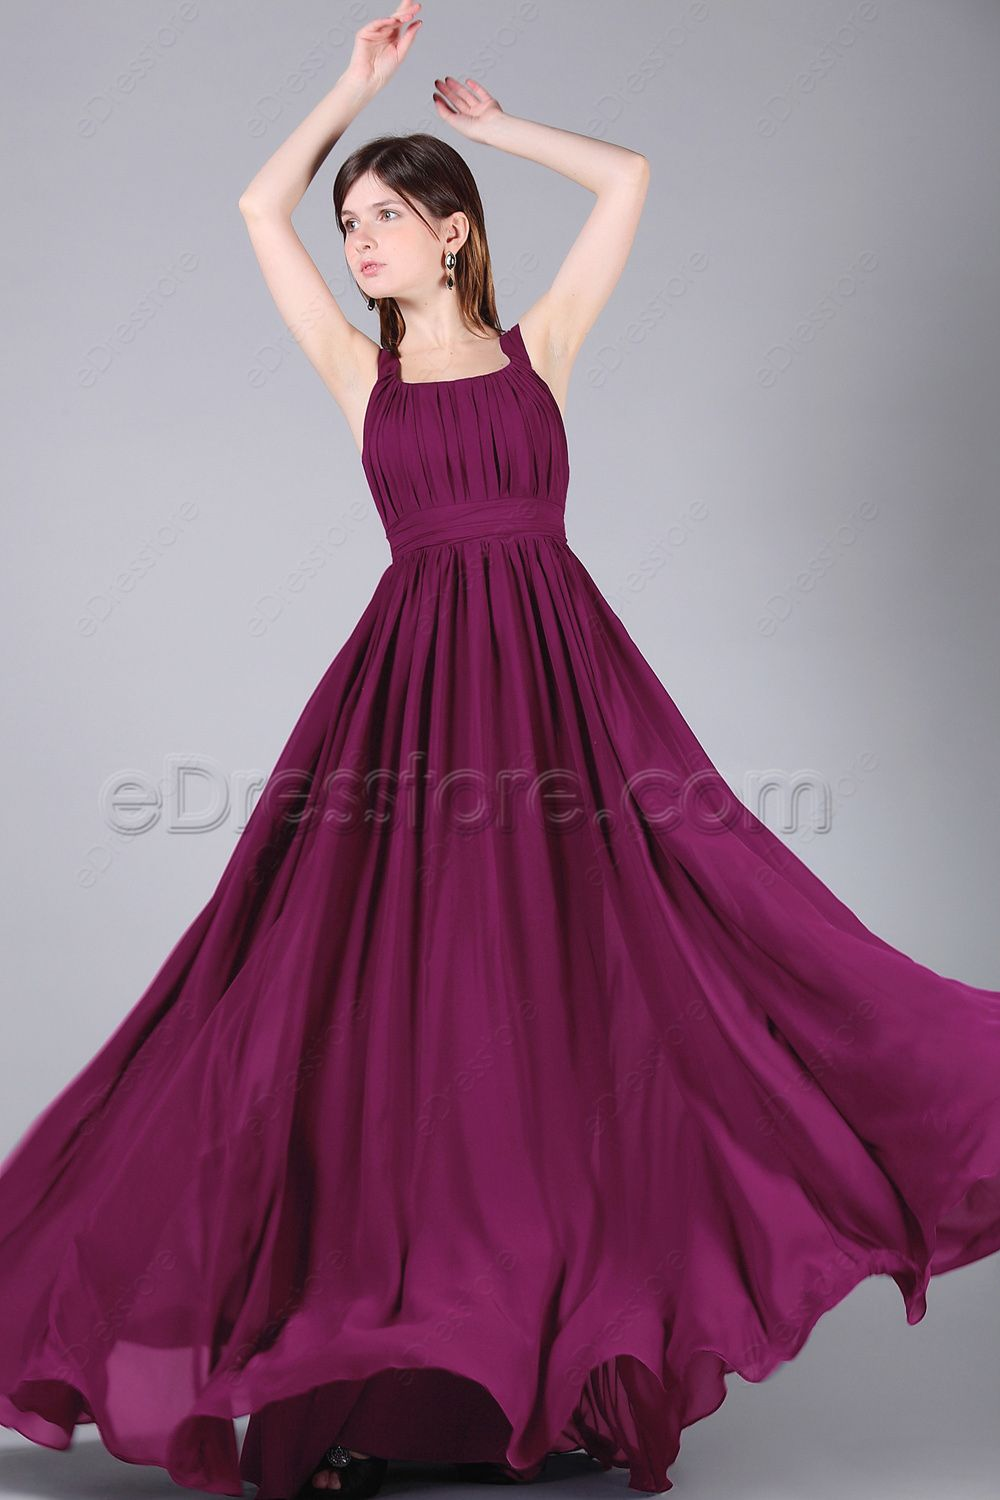 Magenta long bridesmaid dresses with wide straps magenta magenta long bridesmaid dresses with wide straps dark purple bridesmaid dressesjunior ombrellifo Images